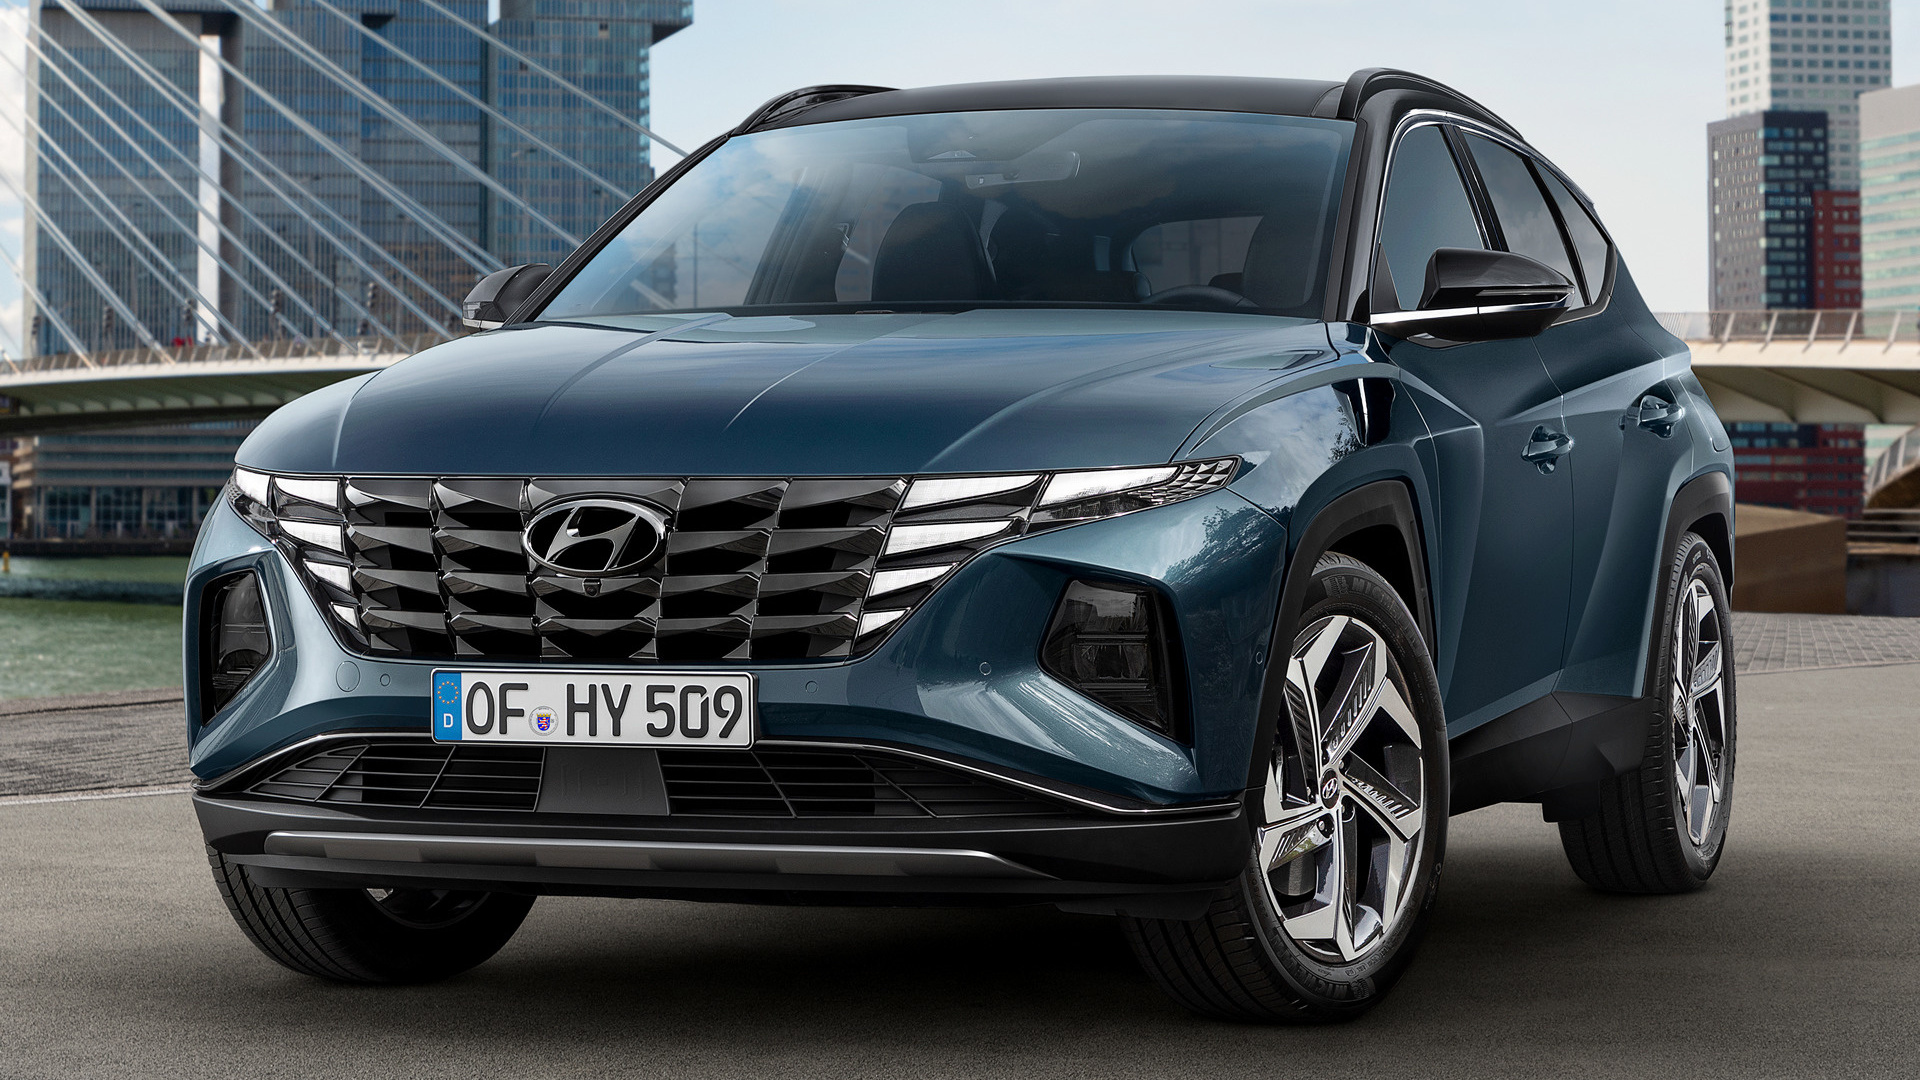 2021 Hyundai Tucson Hybrid - Wallpapers and HD Images ...